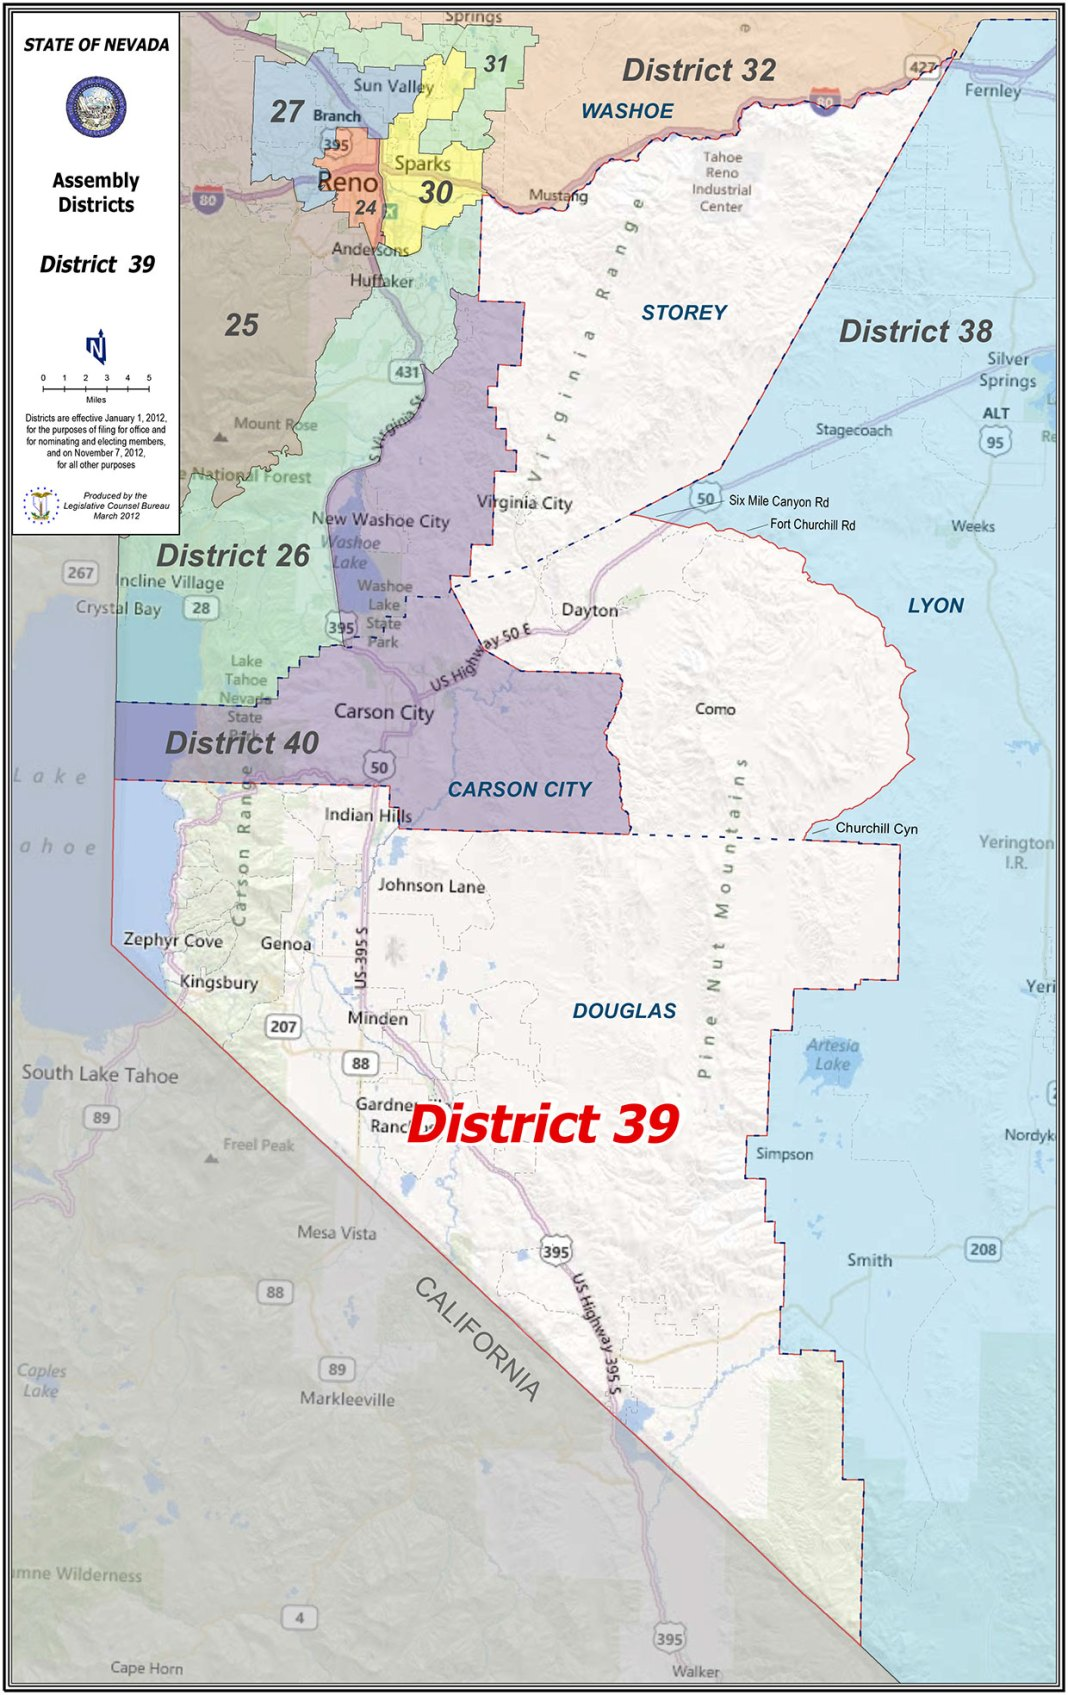 Nevada Assembly District 39 - image - State of Nevada.